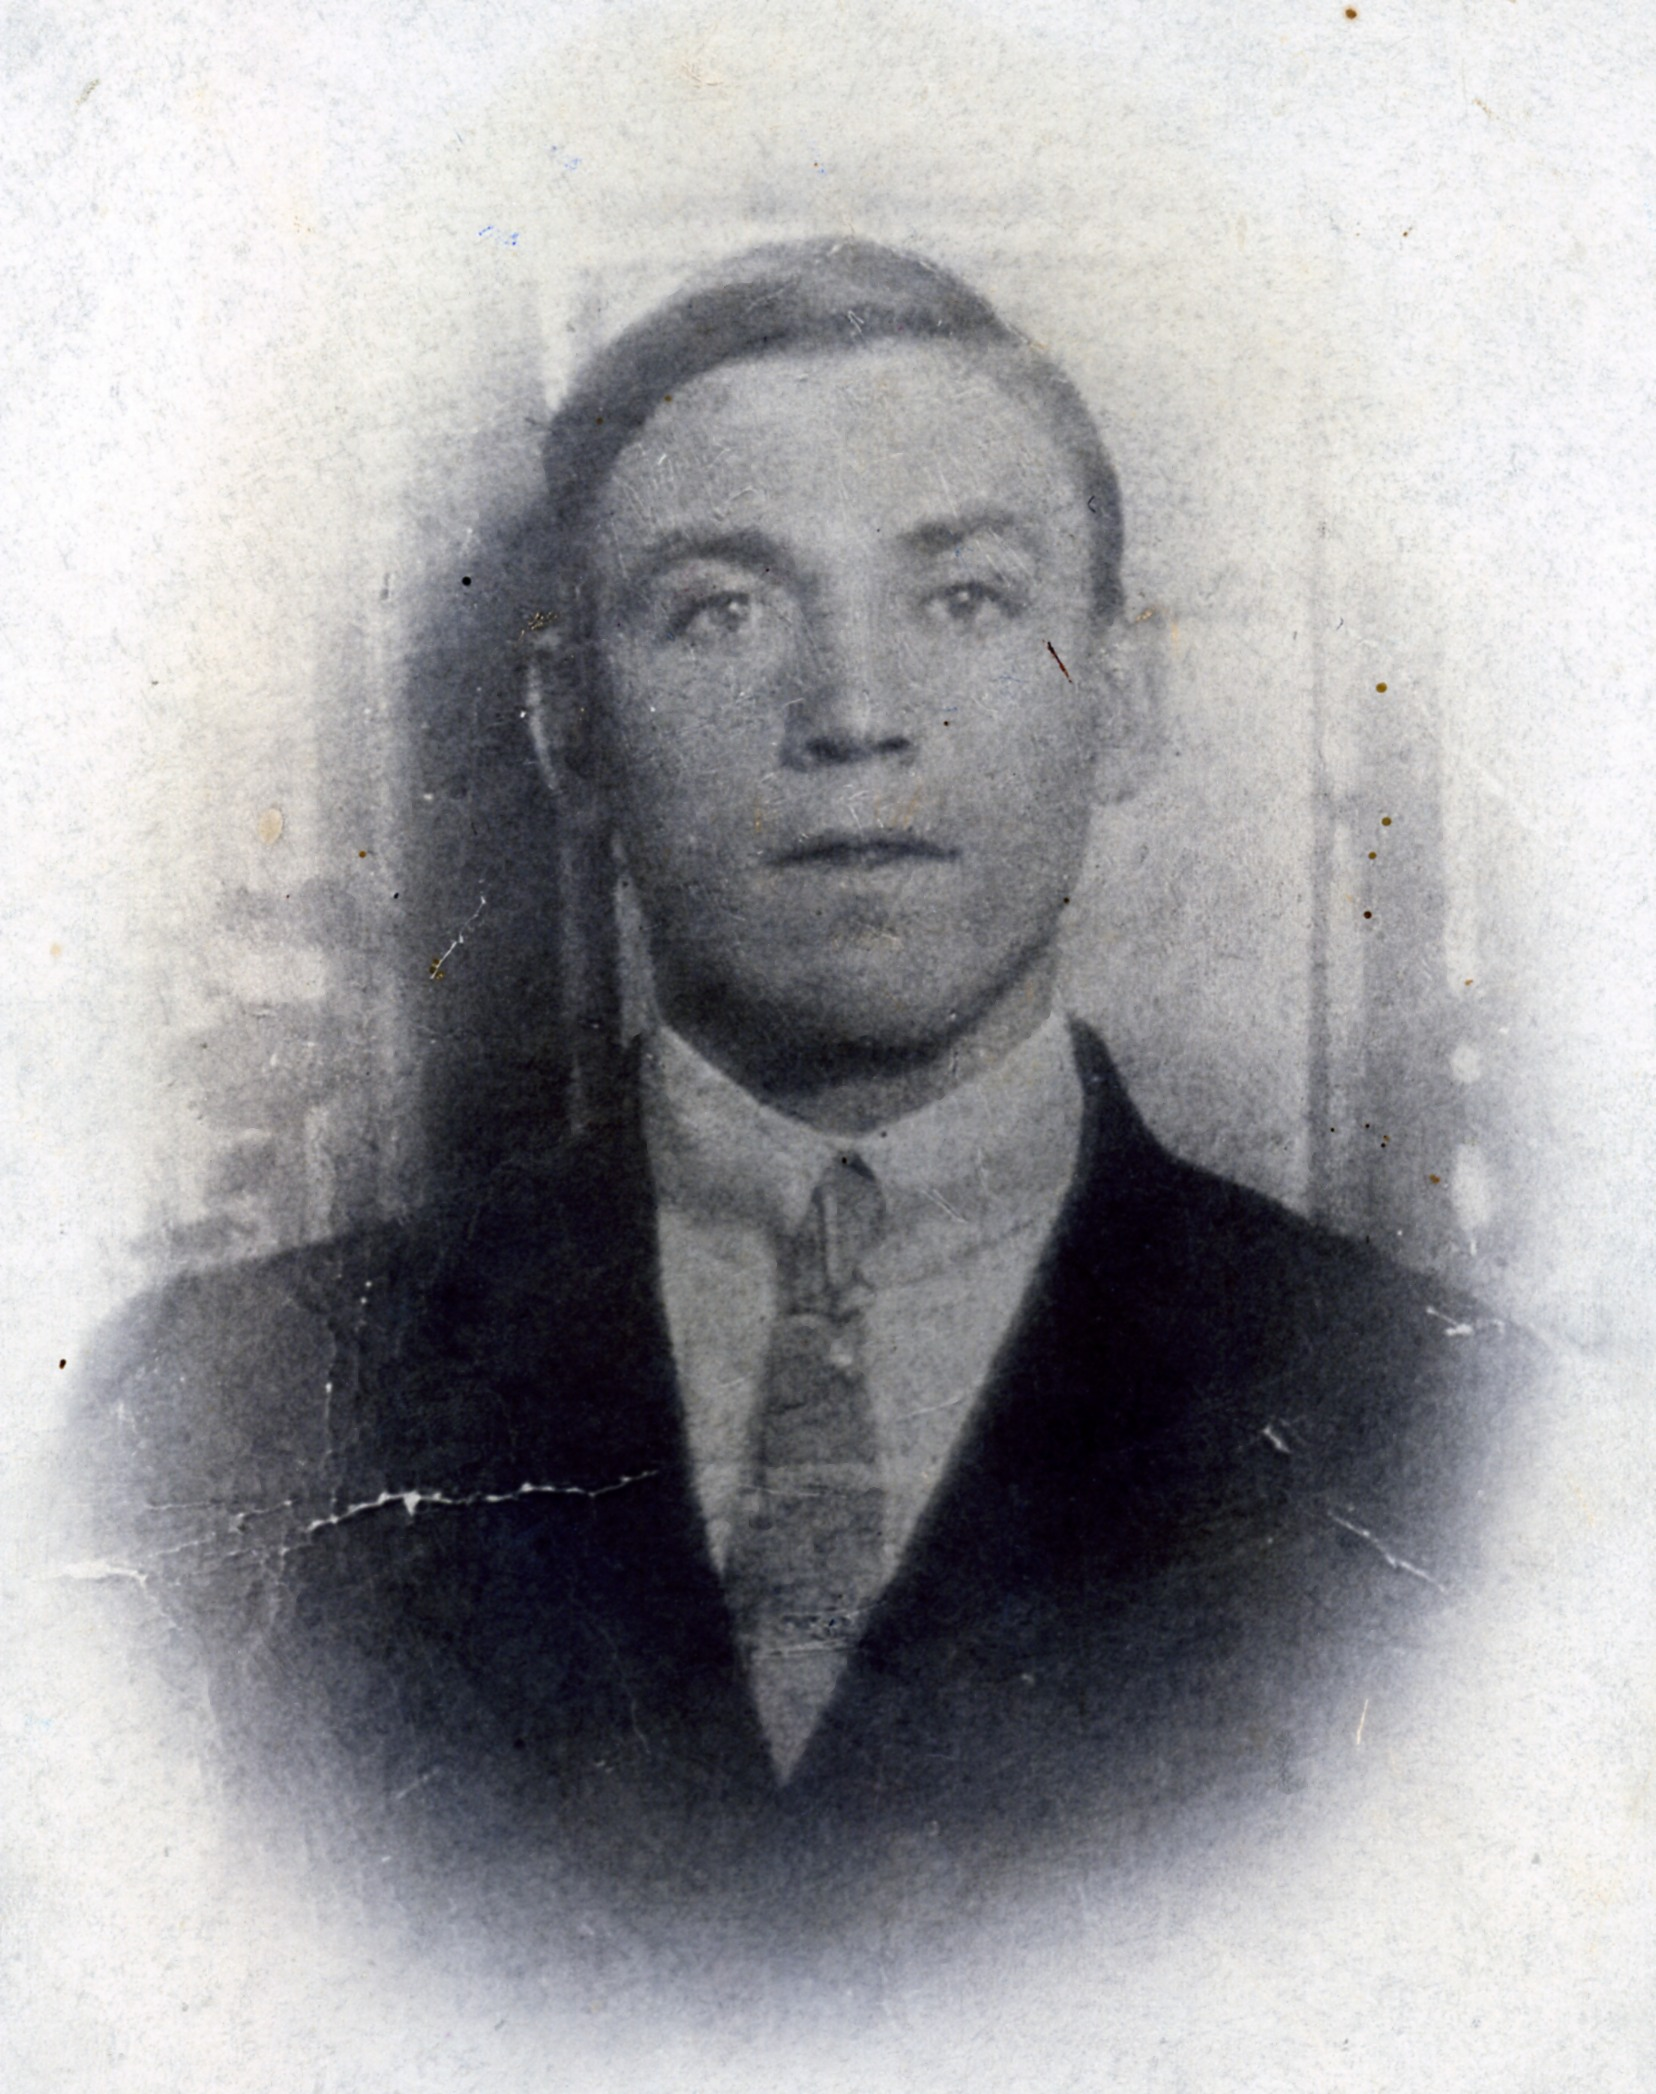 Photo of Henry Edward Eaton– Henry Edward Eaton was born in Liverpool on August 1, 1894